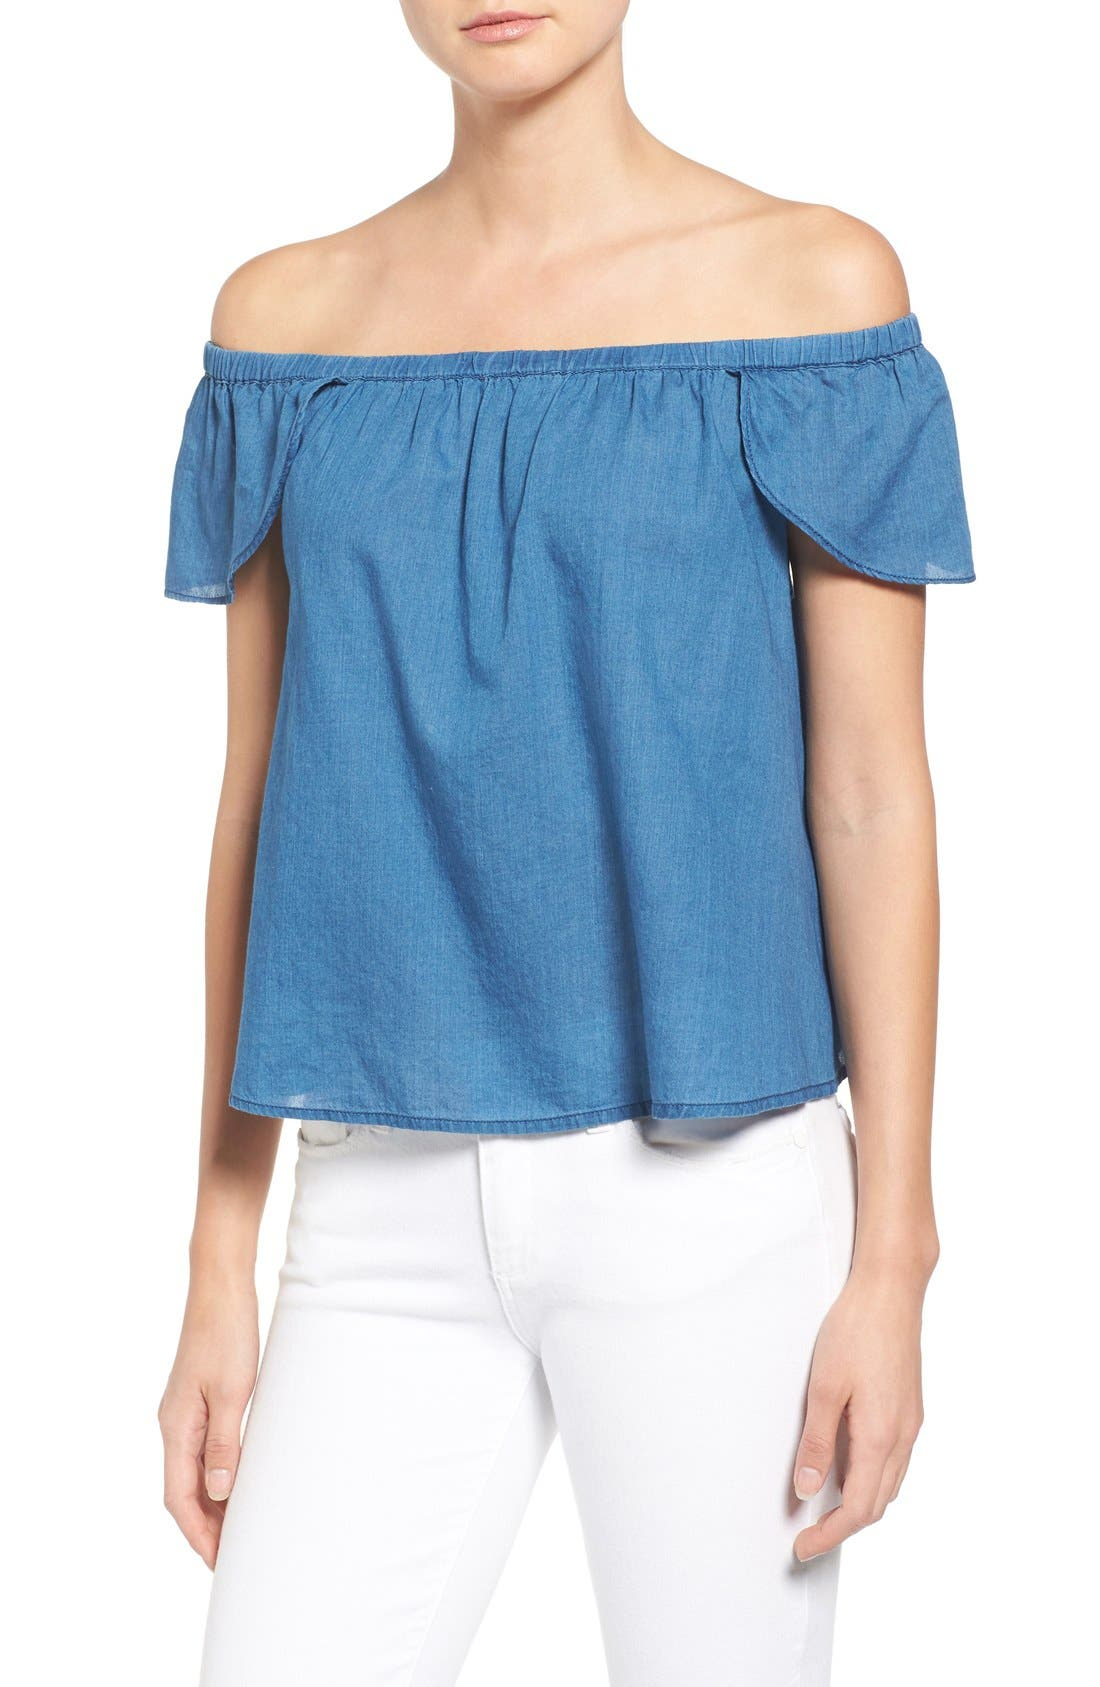 MADEWELL,                             Off the Shoulder Cotton Top,                             Main thumbnail 1, color,                             400